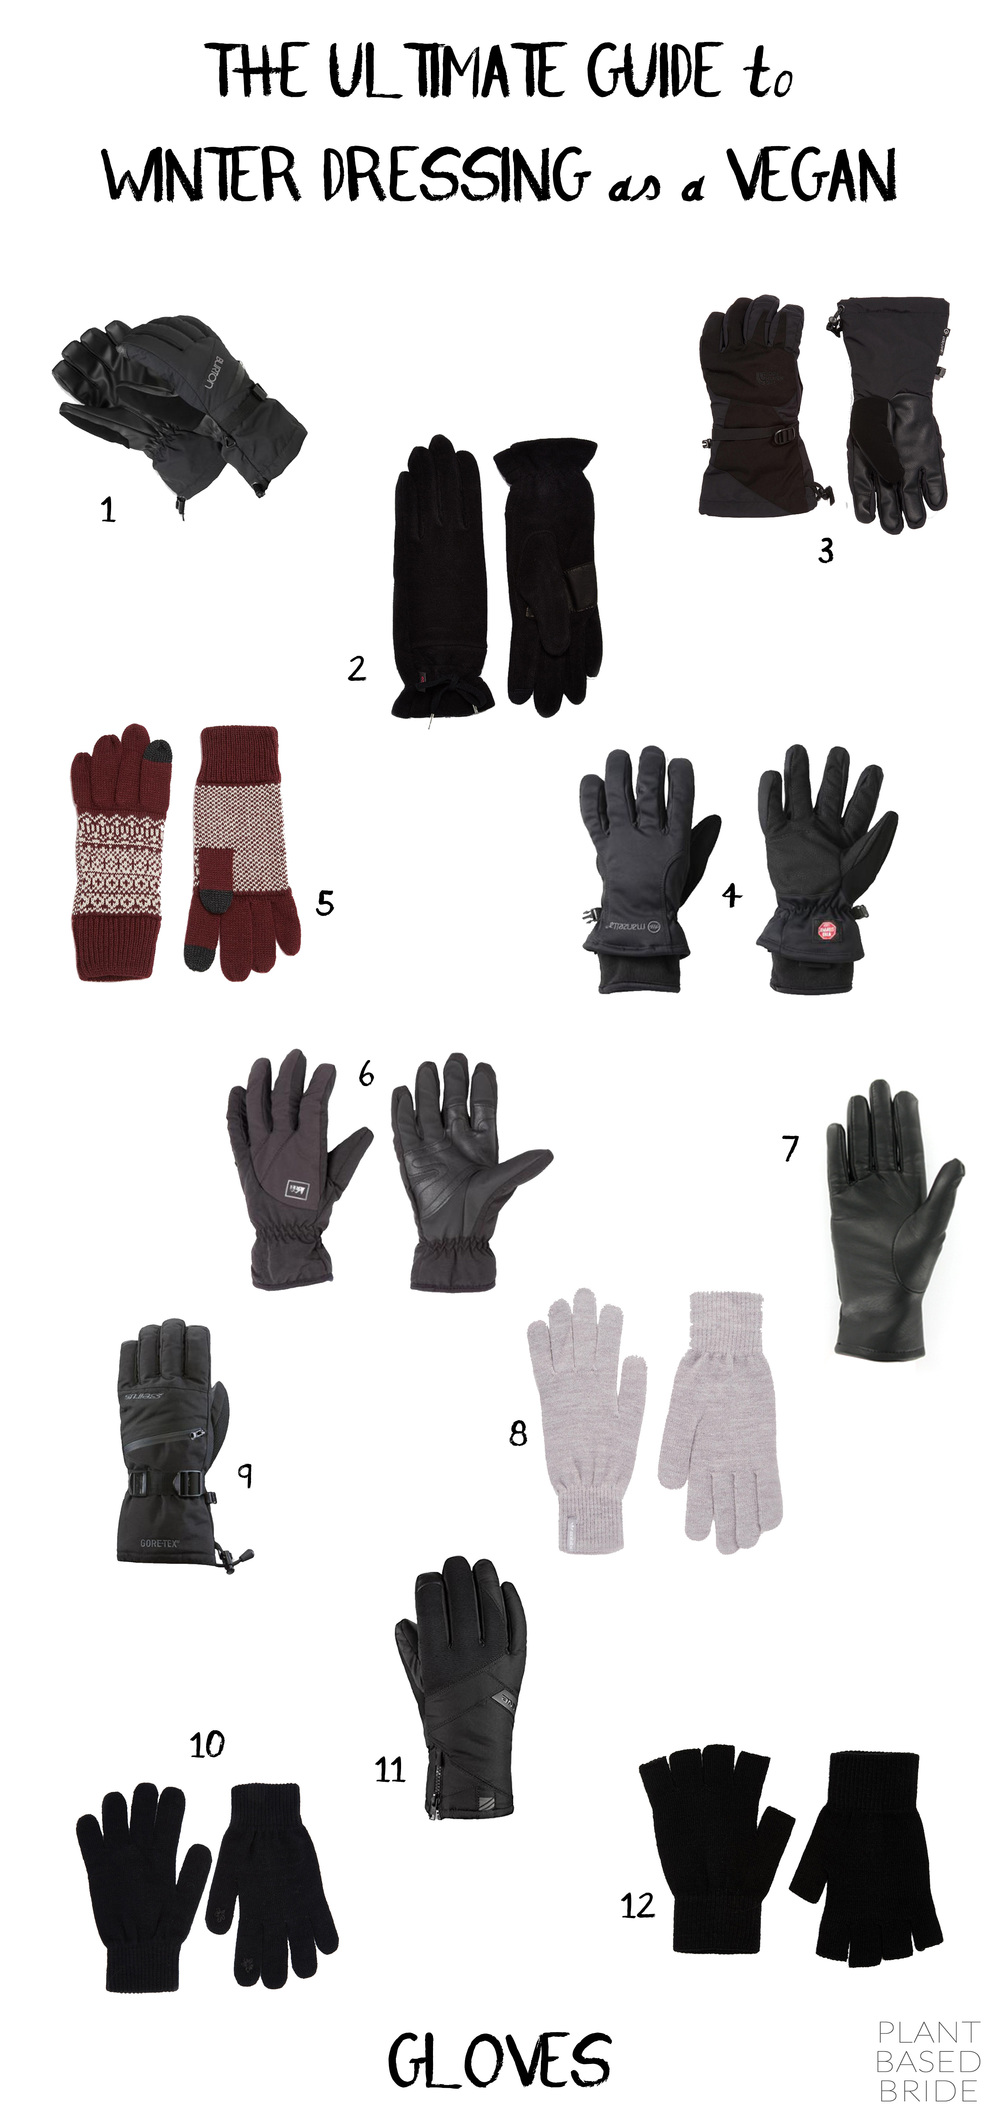 Vegan Gloves // The Ultimate Guide to Winter Dressing as a Vegan // Plant Based Bride